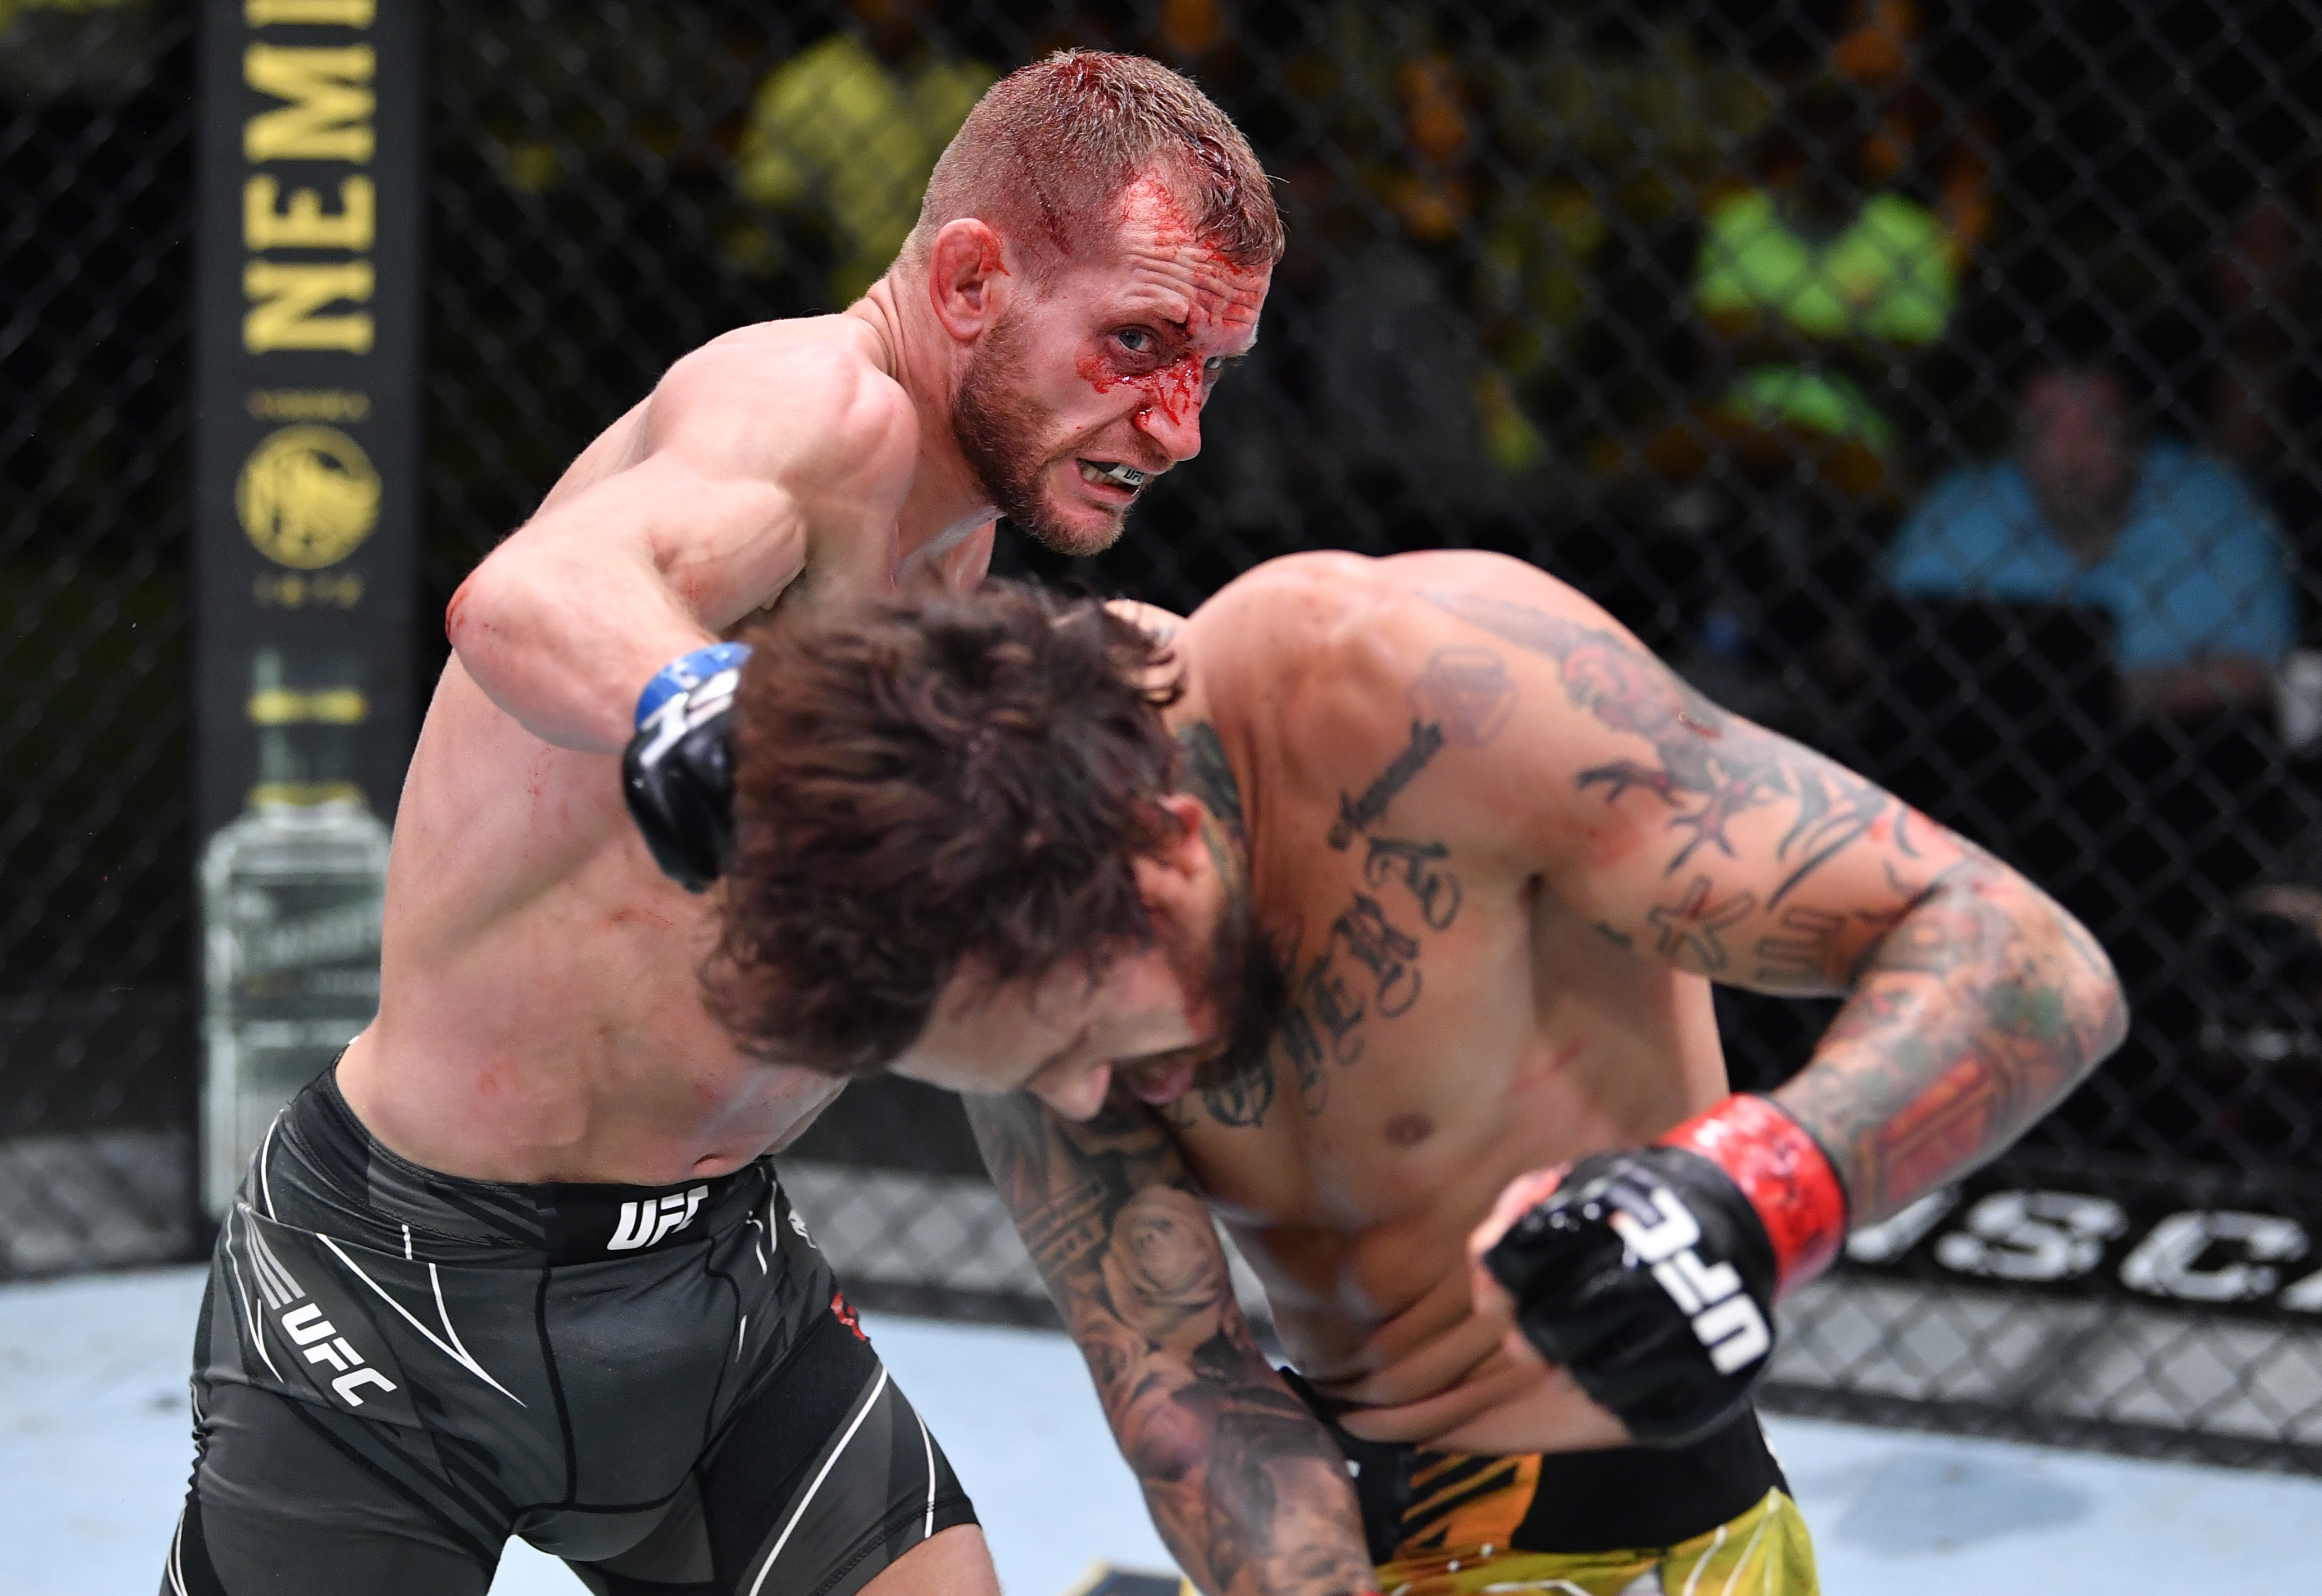 Bantamweights Davey Grant and Marlon Vera won Fight of the Night honors for their three-round war at UFC Vegas 29.